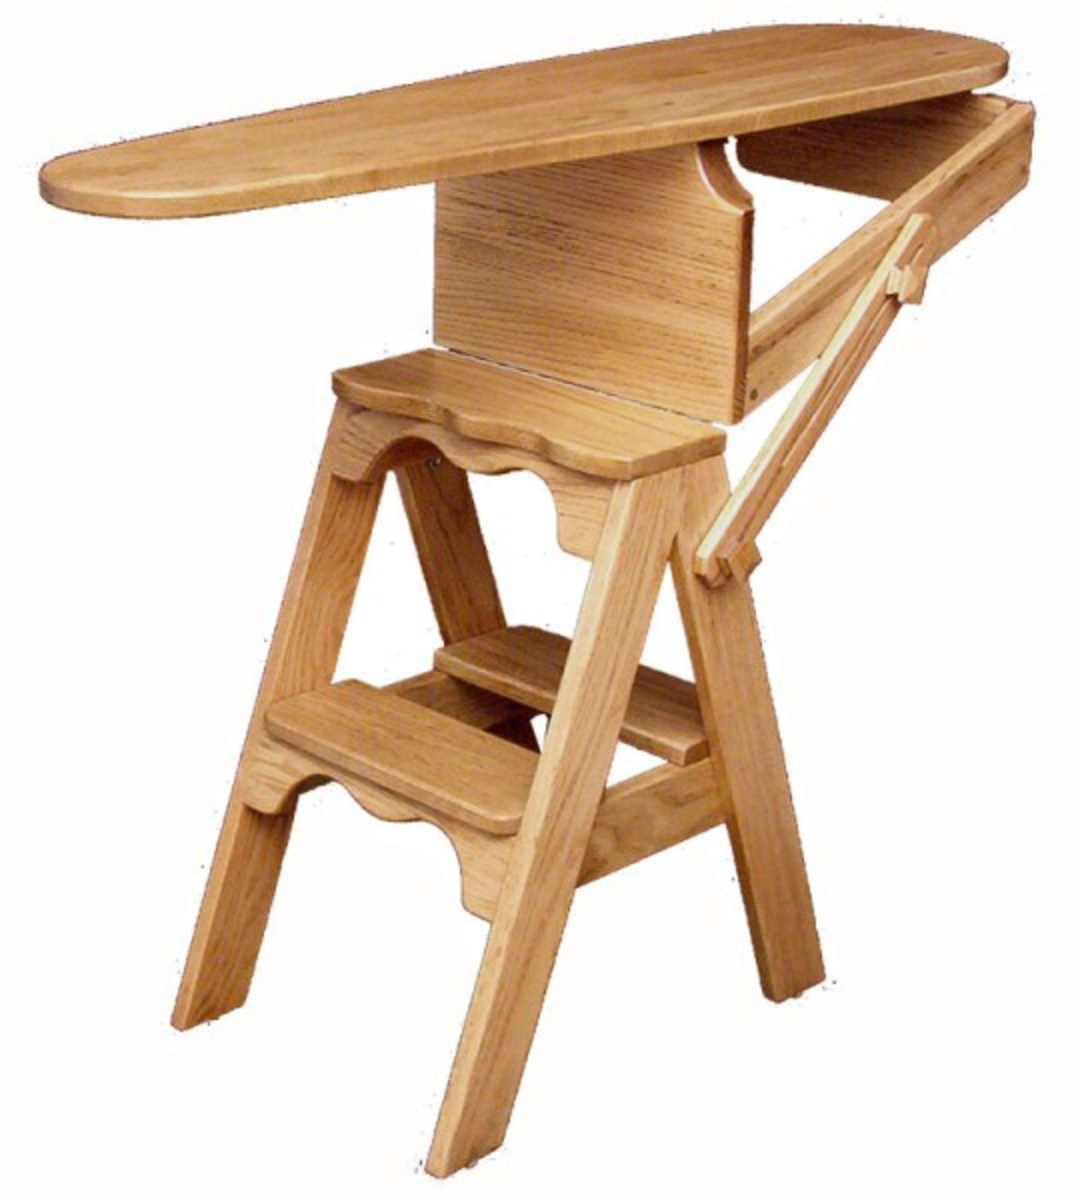 Reproduction bachelor ironing board chair